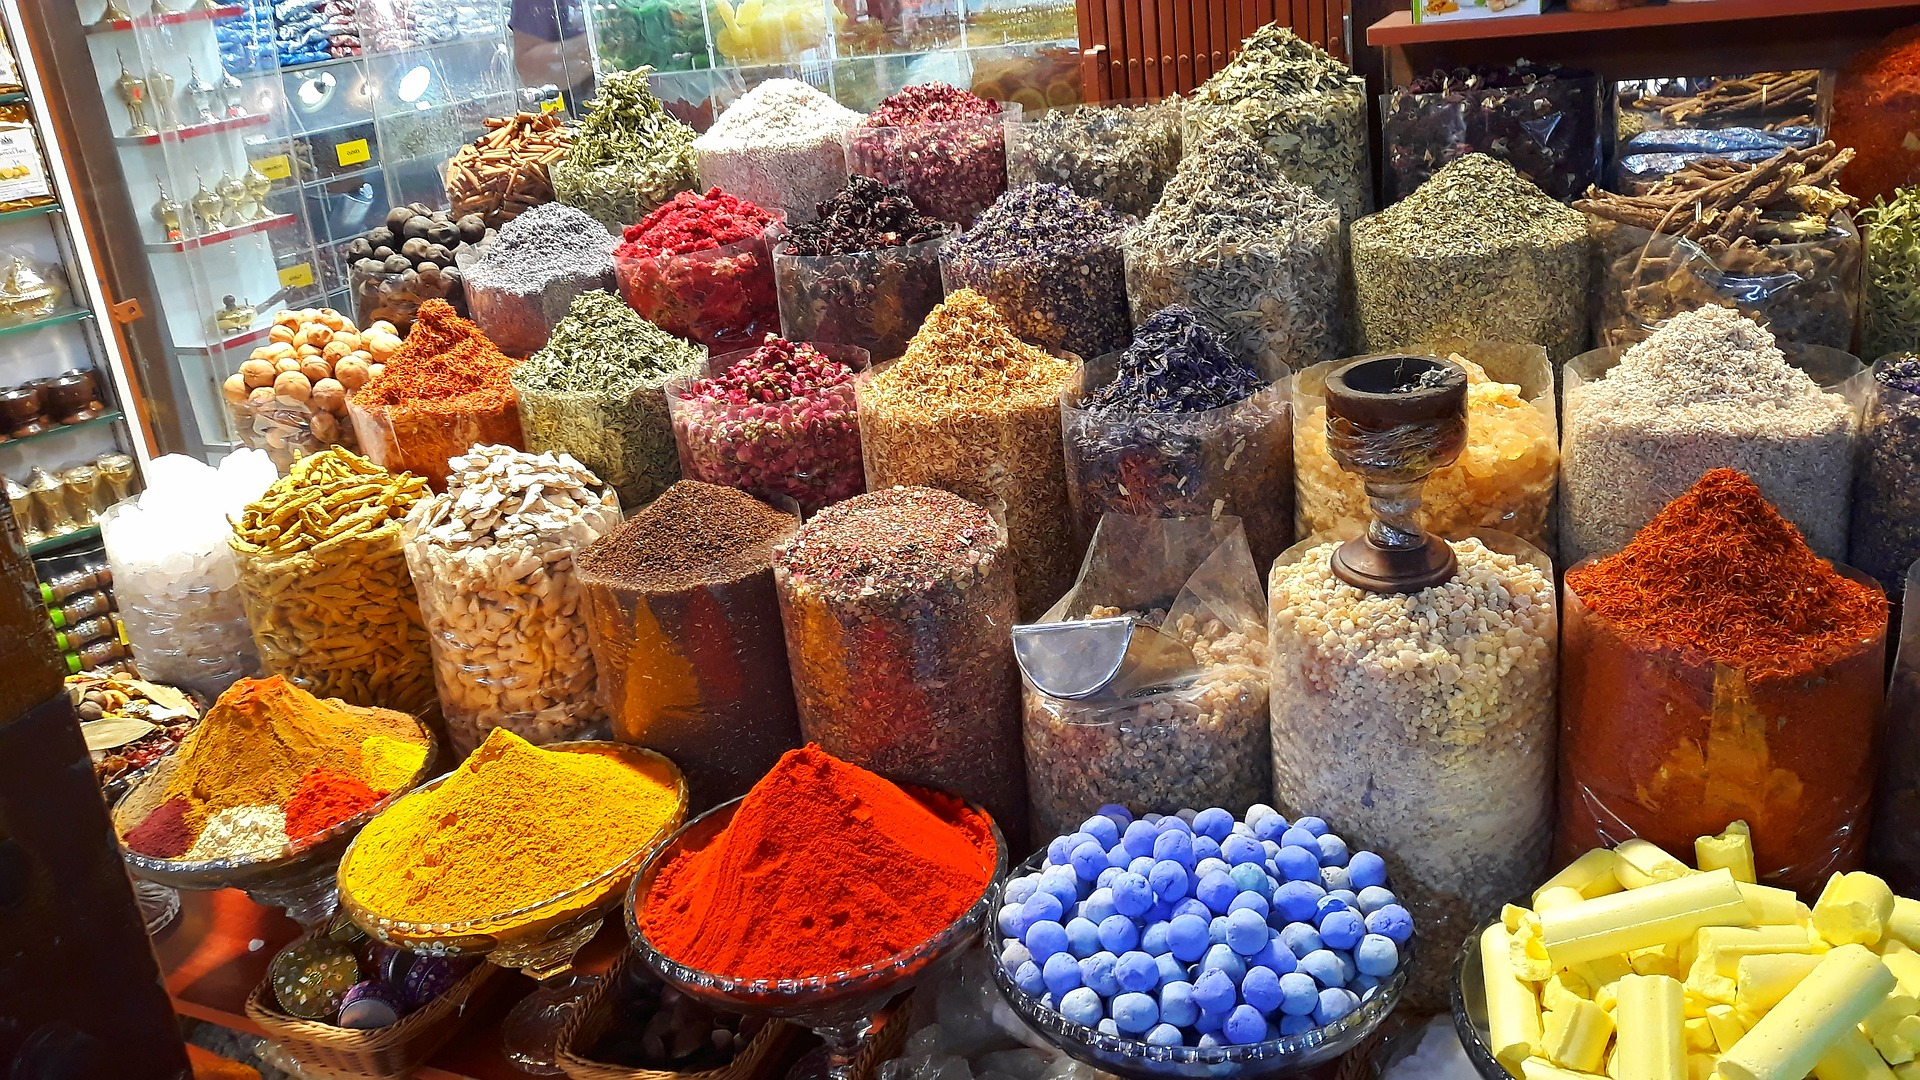 Image of a souk, or market, in the UAE